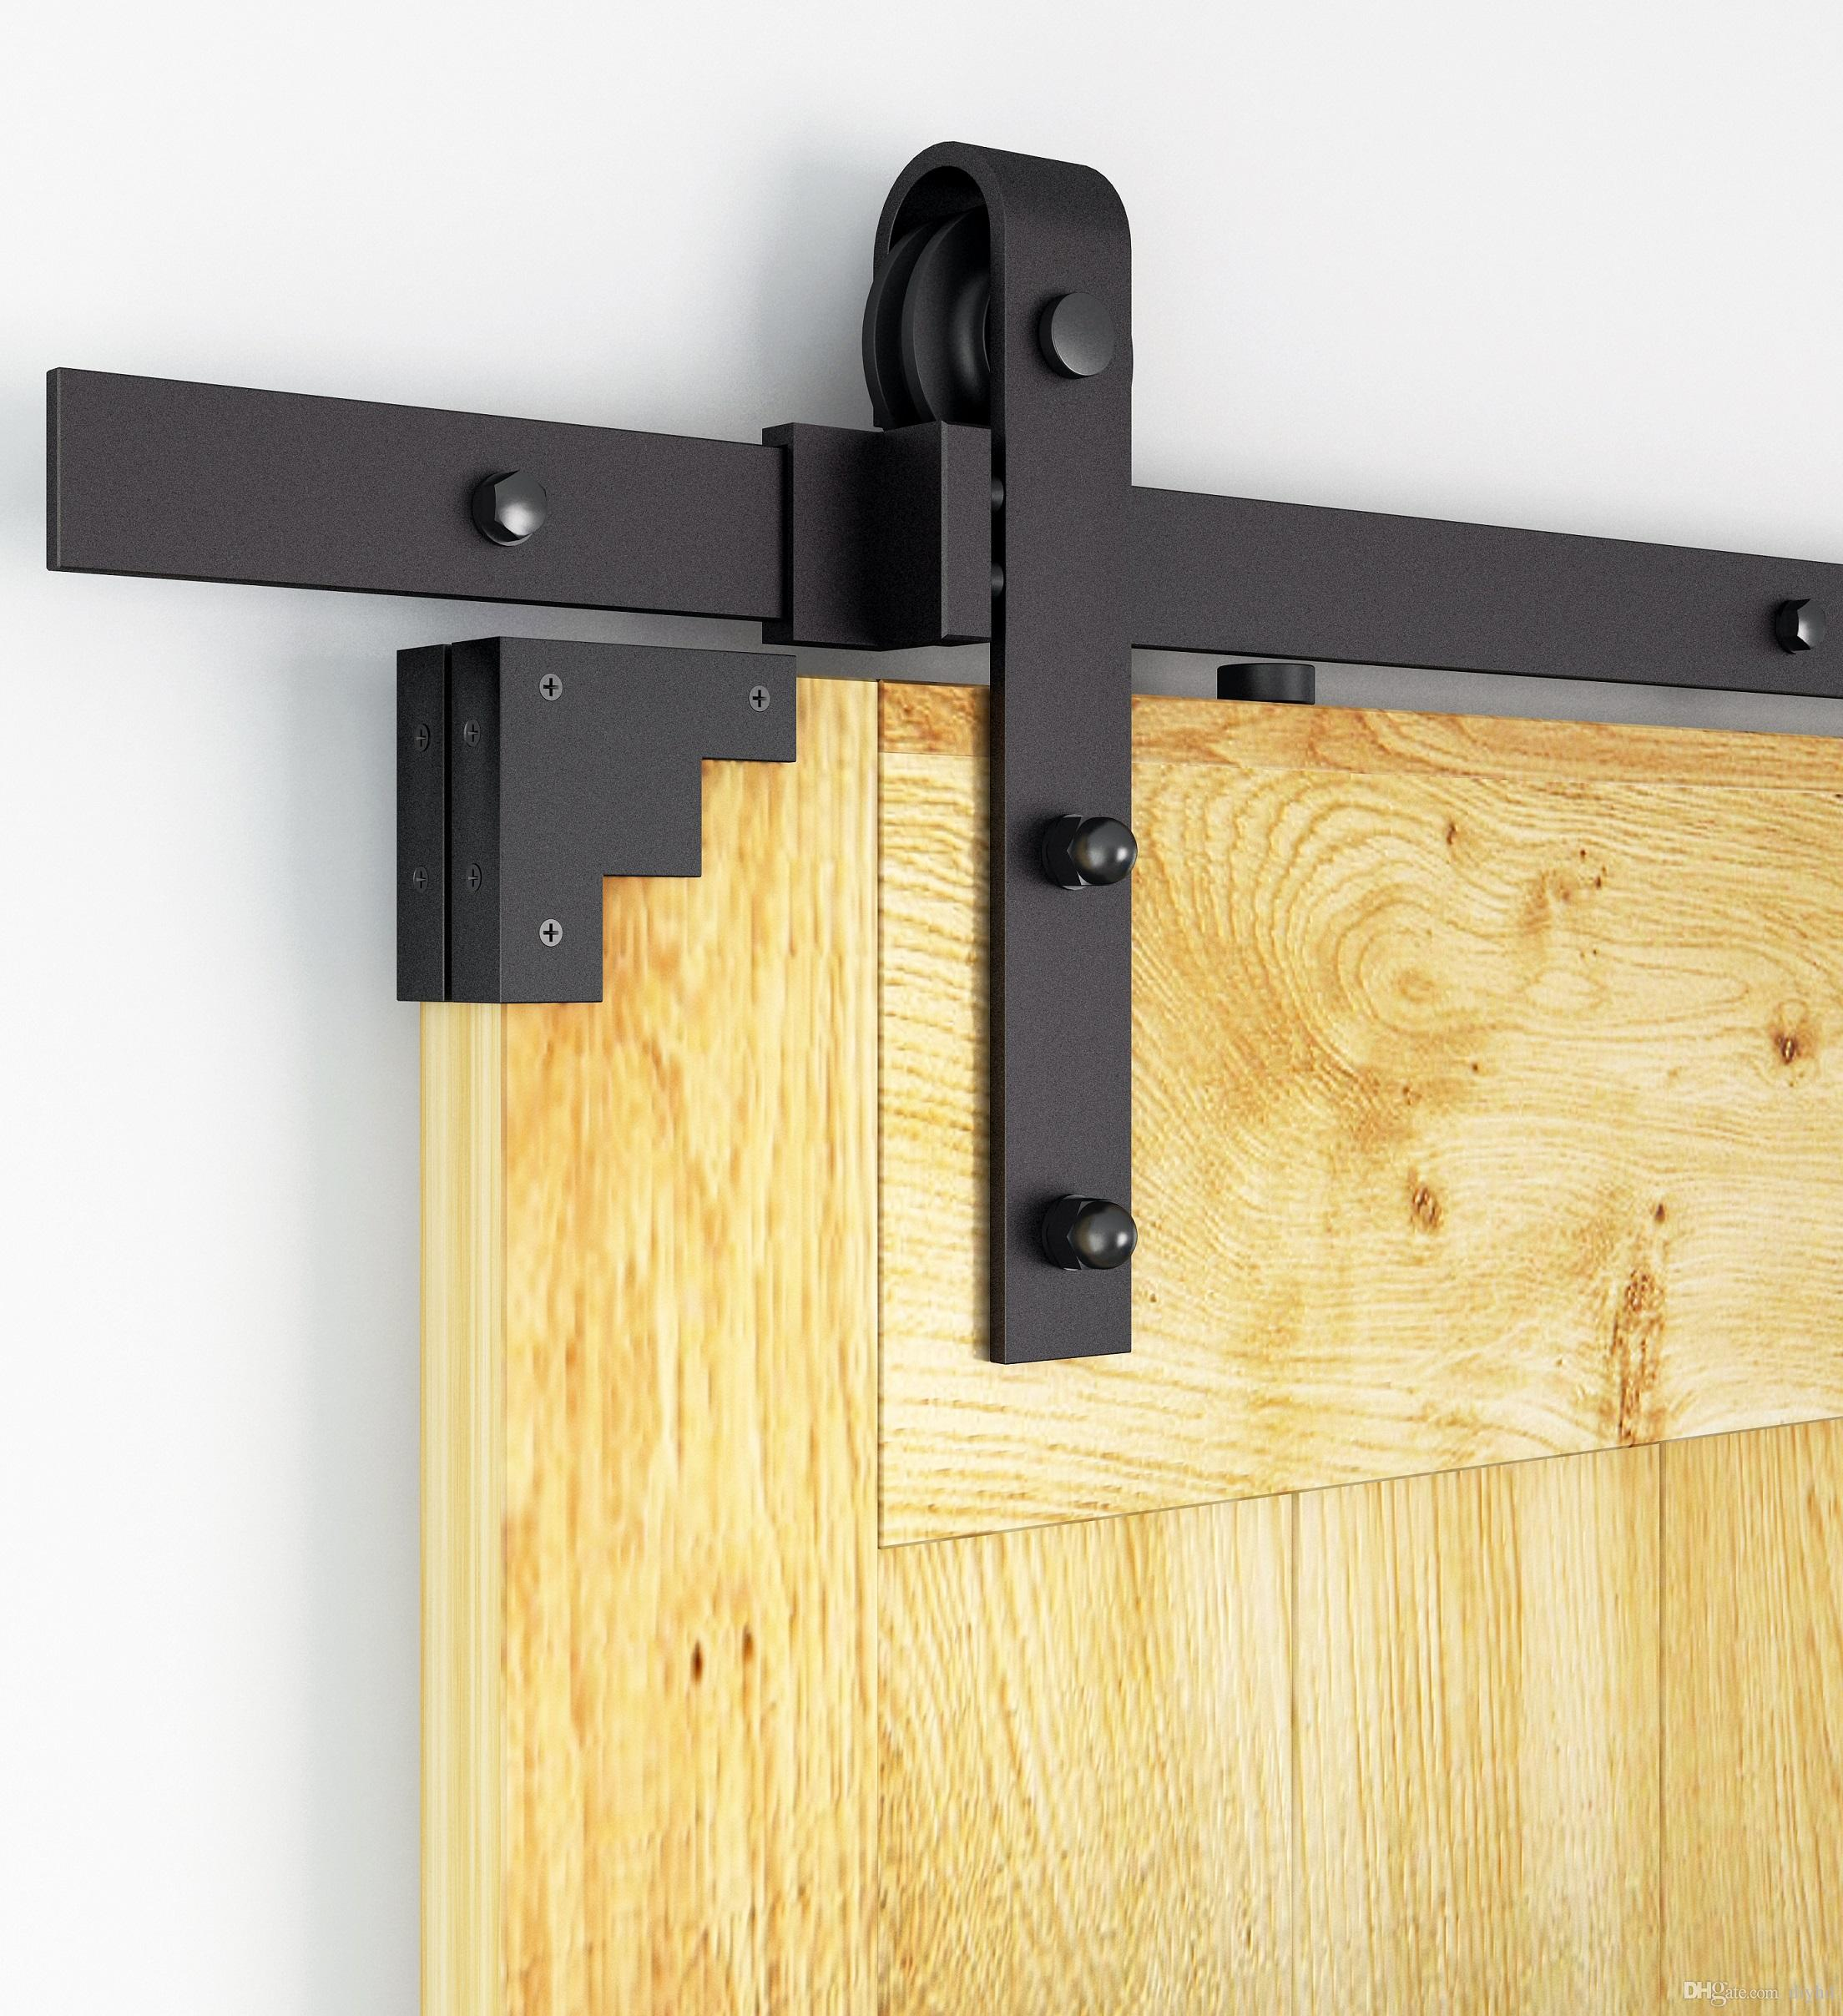 6ft8ft10ft rustic black sliding barn door hardware modern double 6ft8ft10ft rustic black sliding barn door hardware modern double barn wood door hanging track kit sliding barn door hardware barn door kit sliding barn vtopaller Image collections